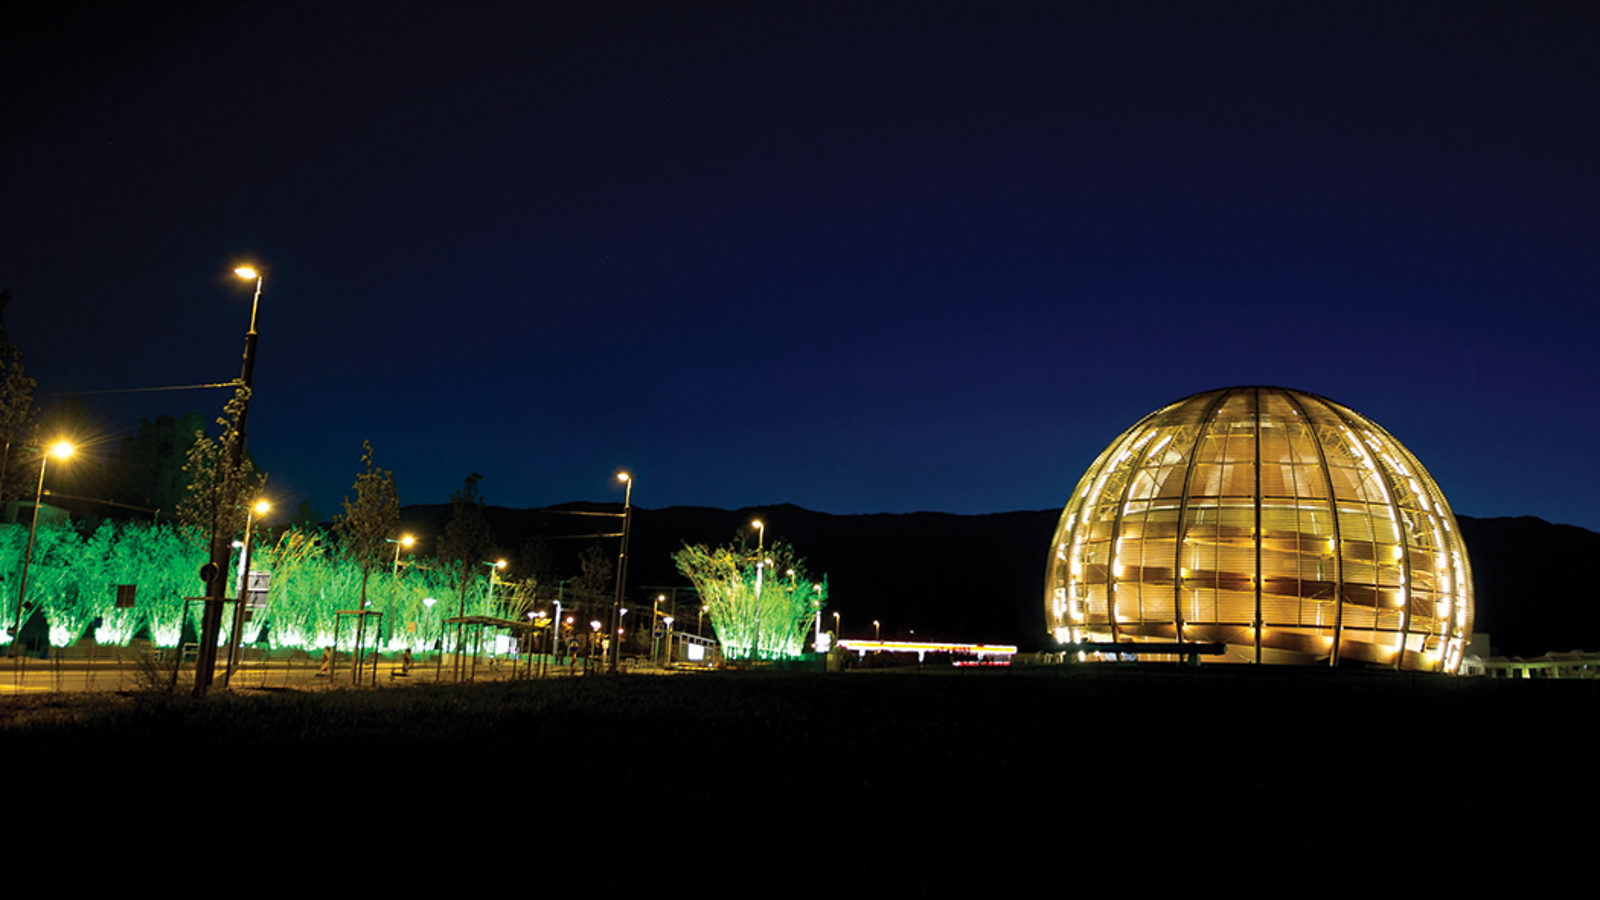 Feature: What's Next for the LHC? (Globe)